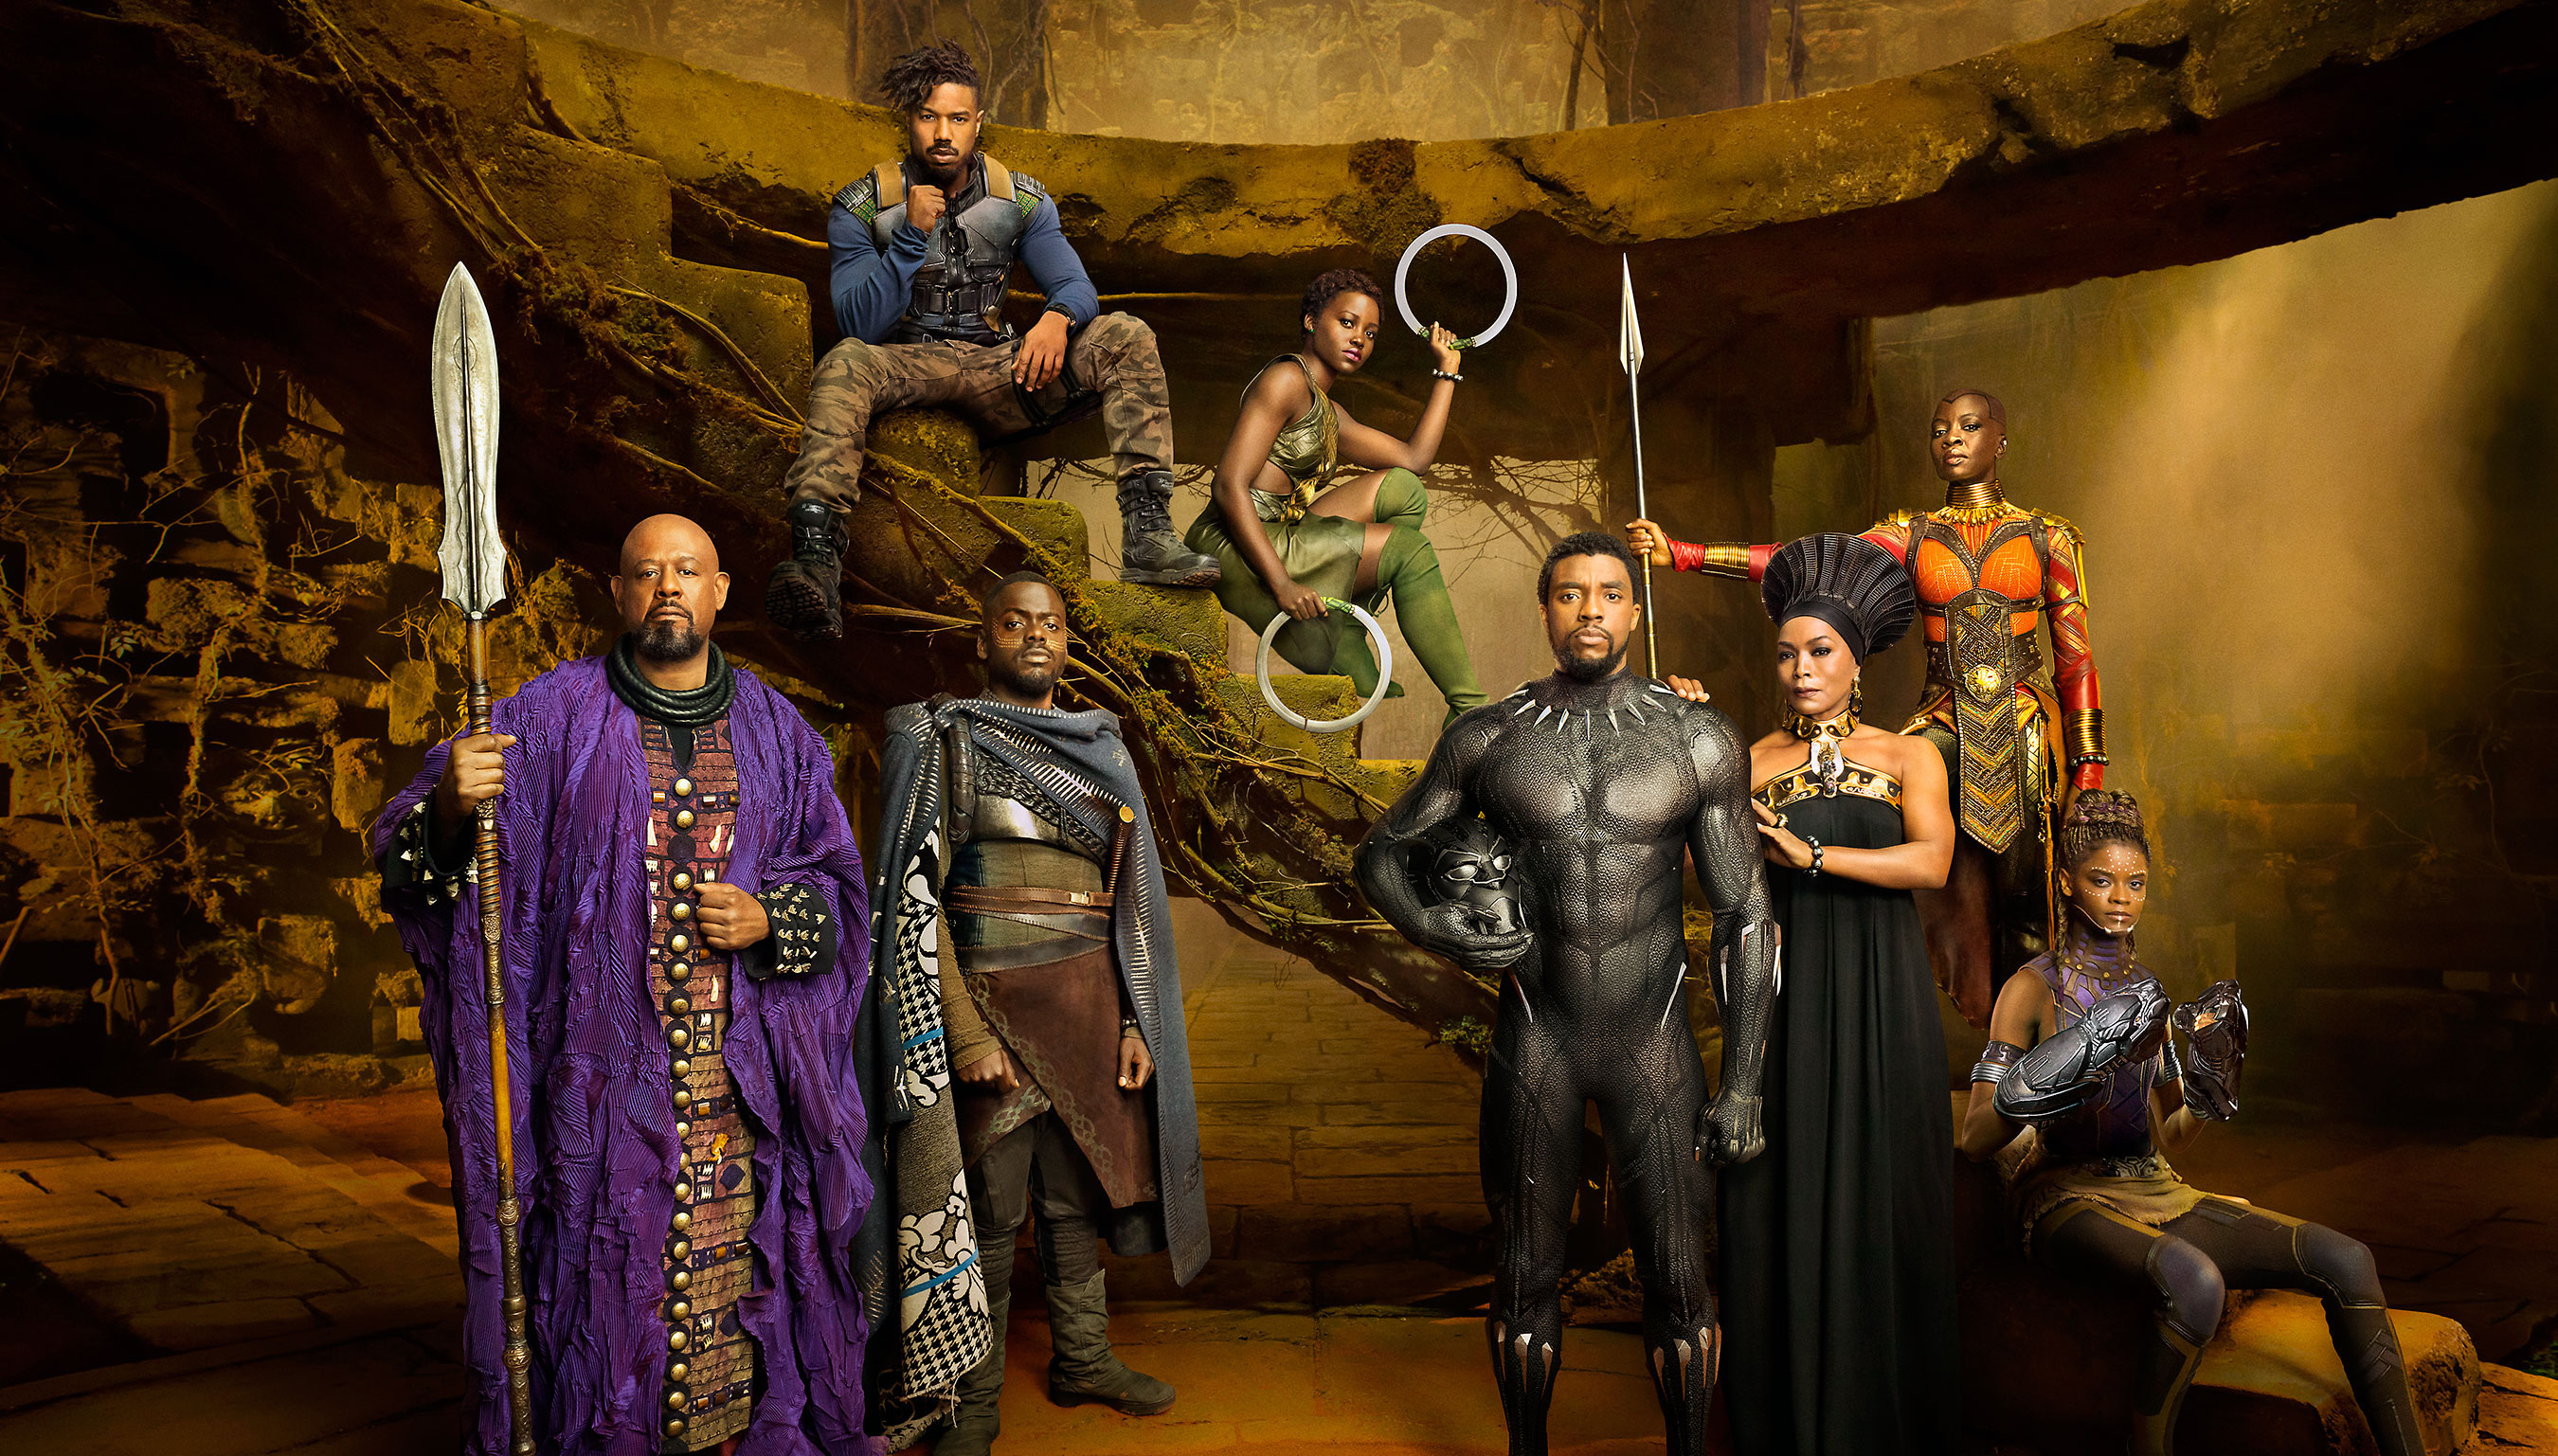 https://cinemaplanet.pt/wp-content/uploads/2018/02/black-panther-cast-social.jpg